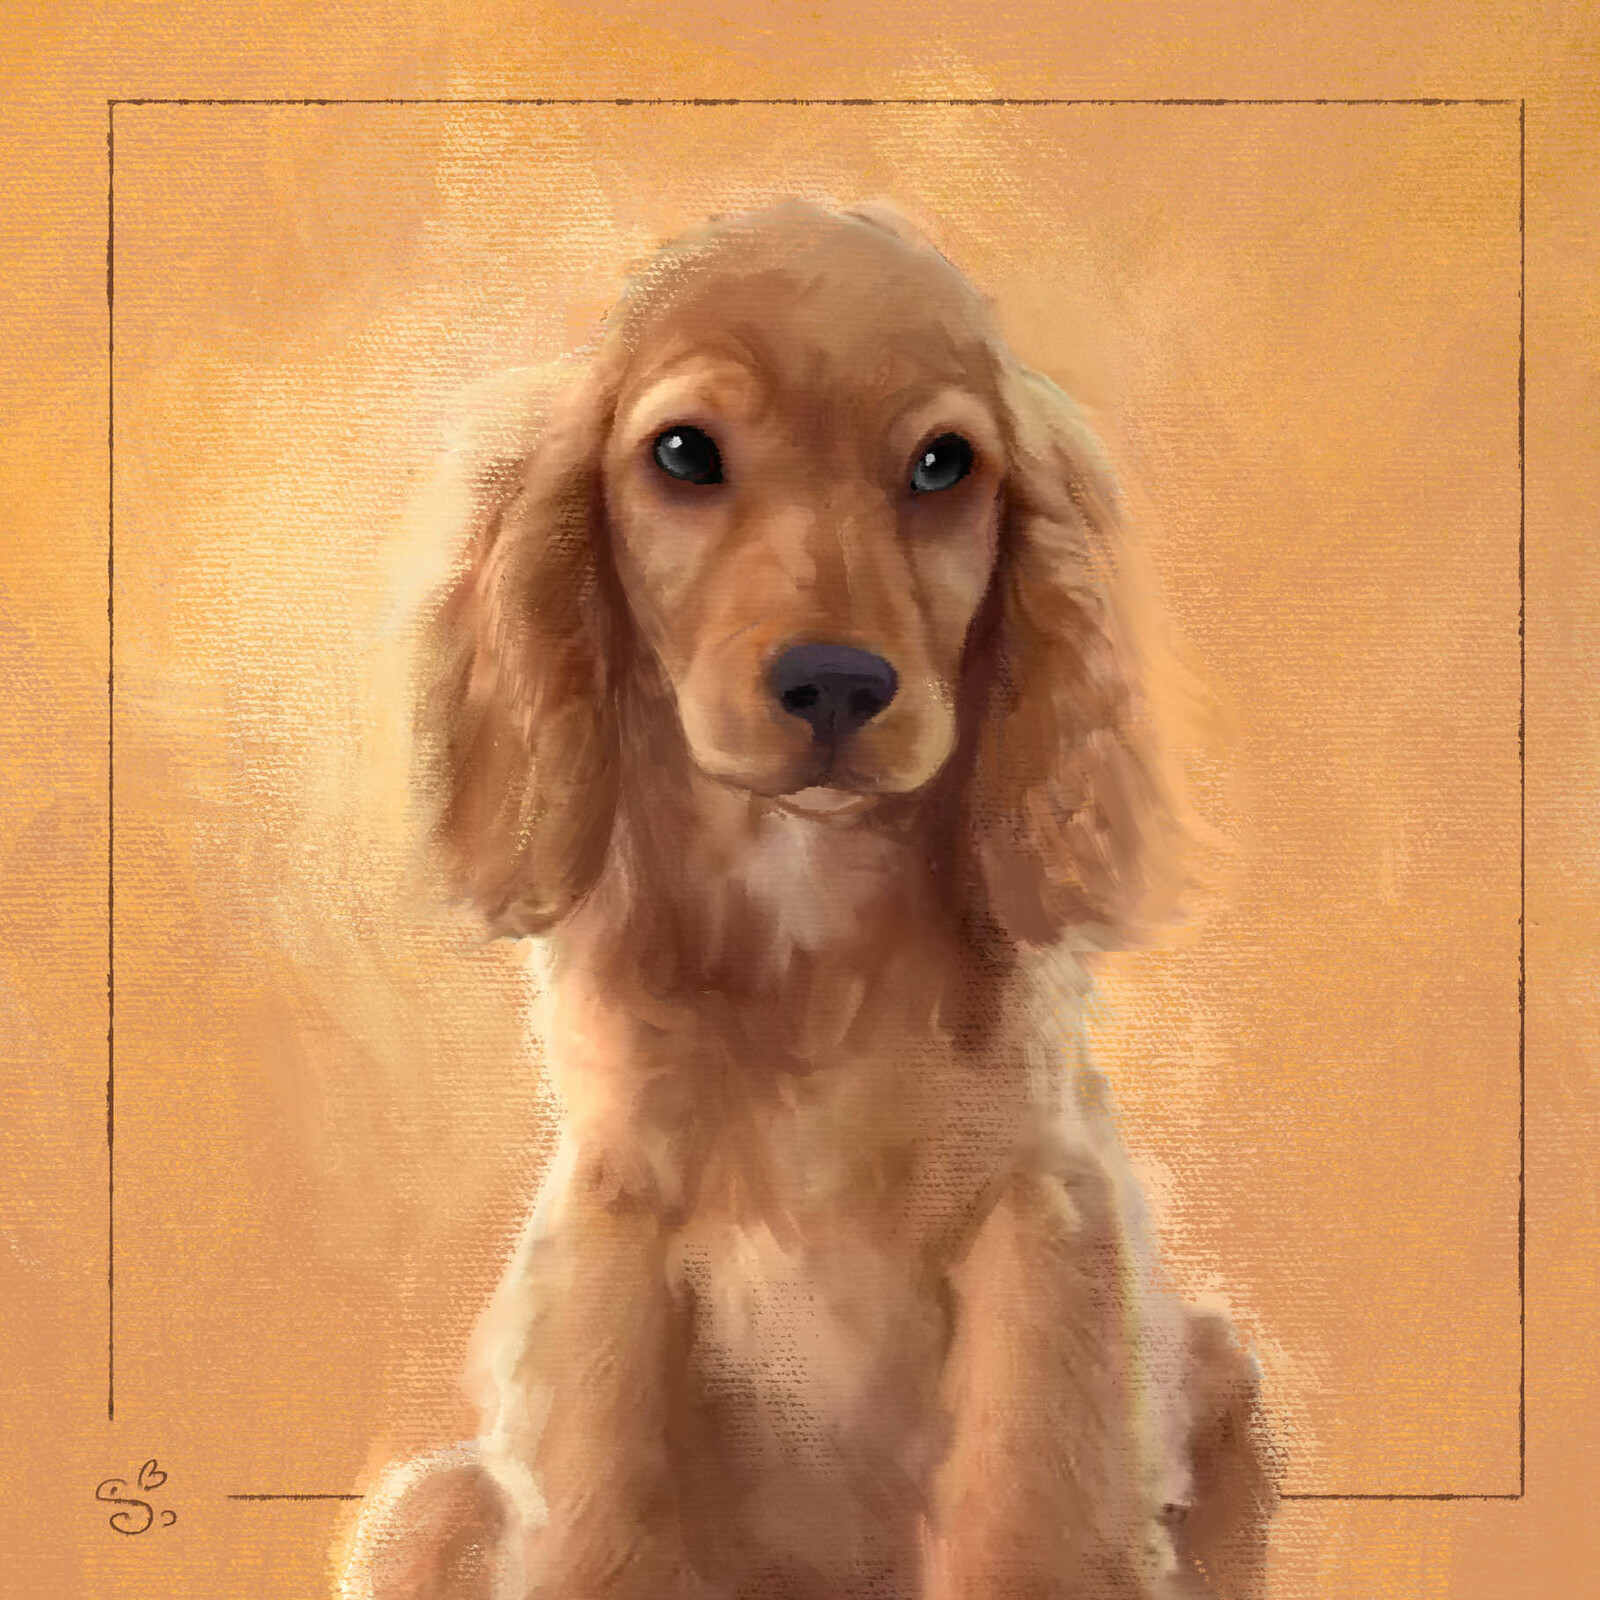 Timmy the Cocker Spaniel